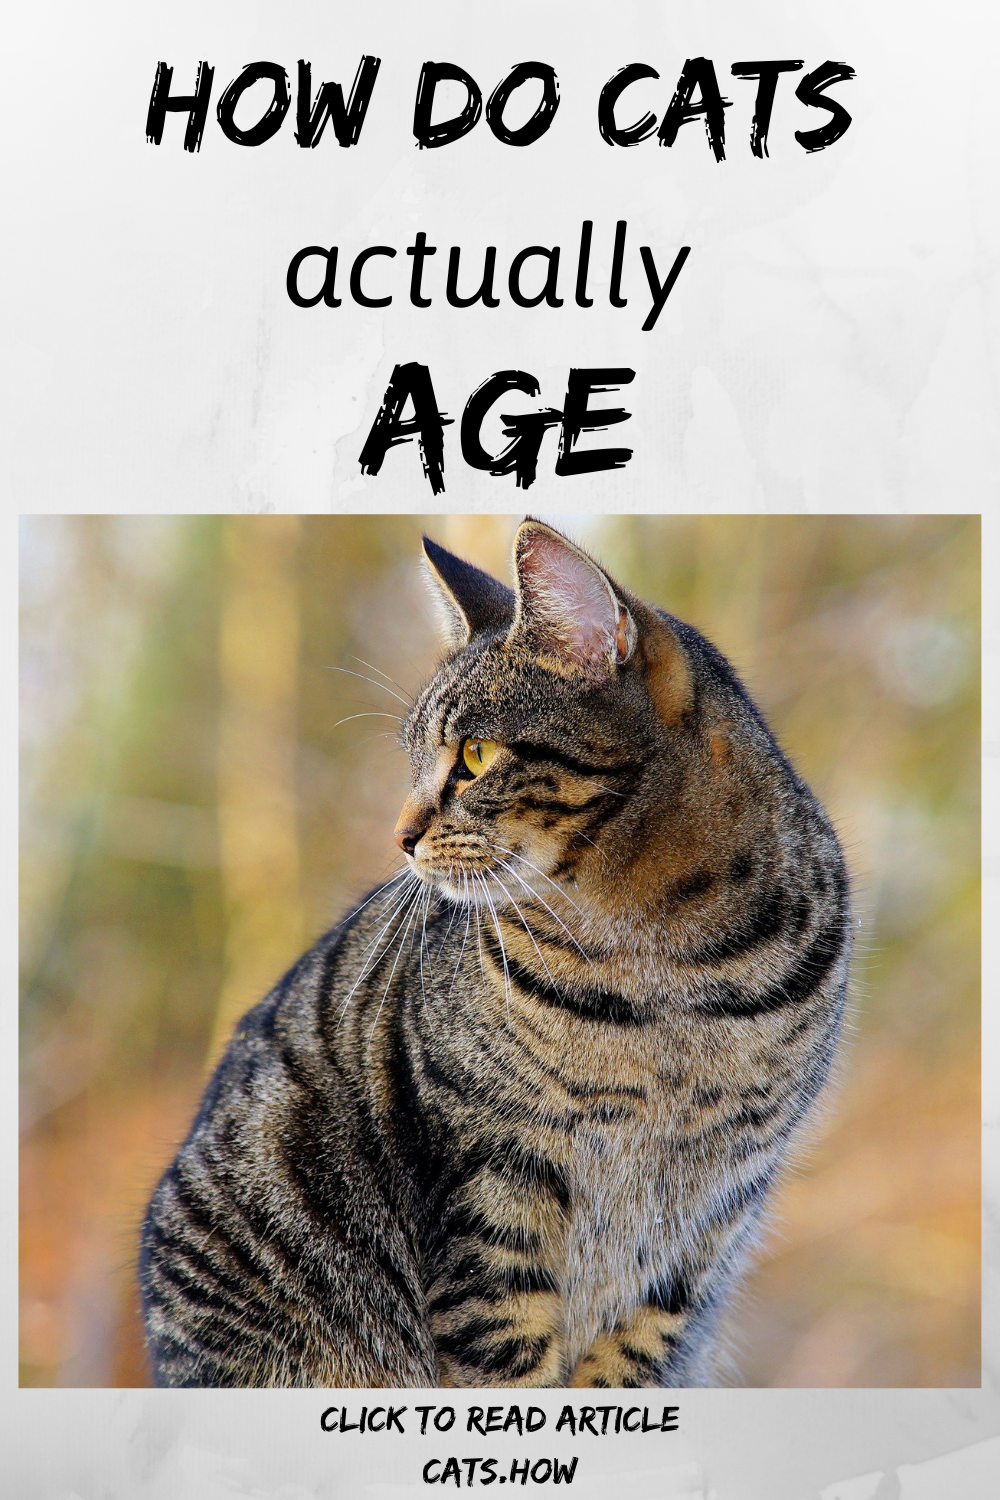 How Do Cats Age? in 2020 Cat ages, Cats, Cat facts